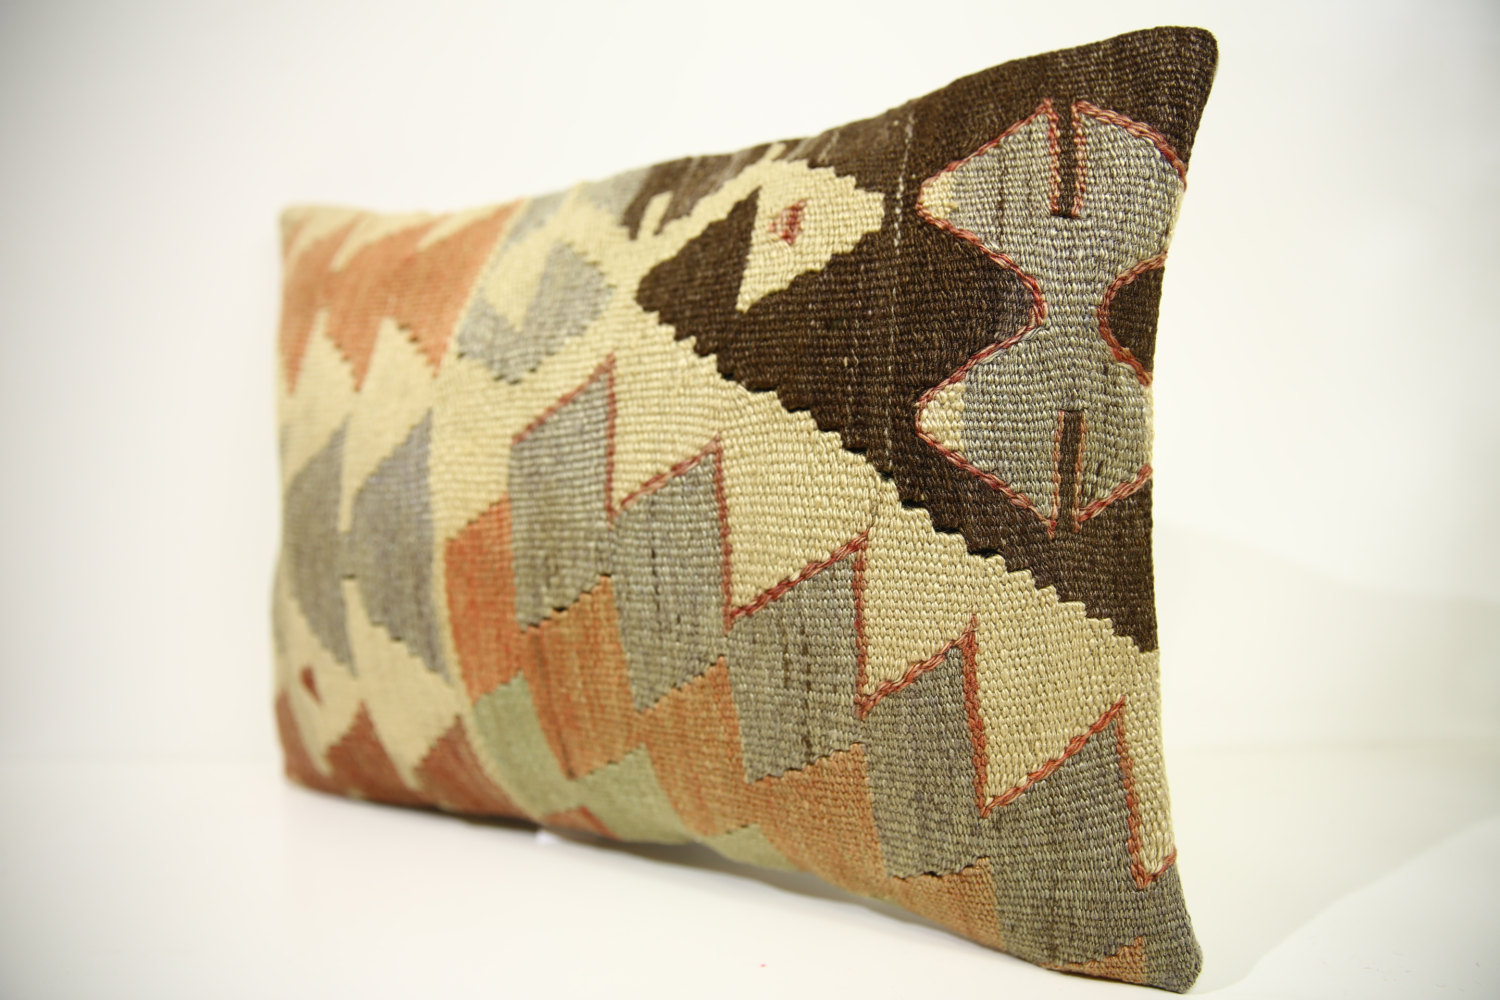 Turkish Kilim Throw Pillows : Kilim Pillows 18x13 Lumbar pillows 1460 Turkish pillows , throw pillows - Pillows